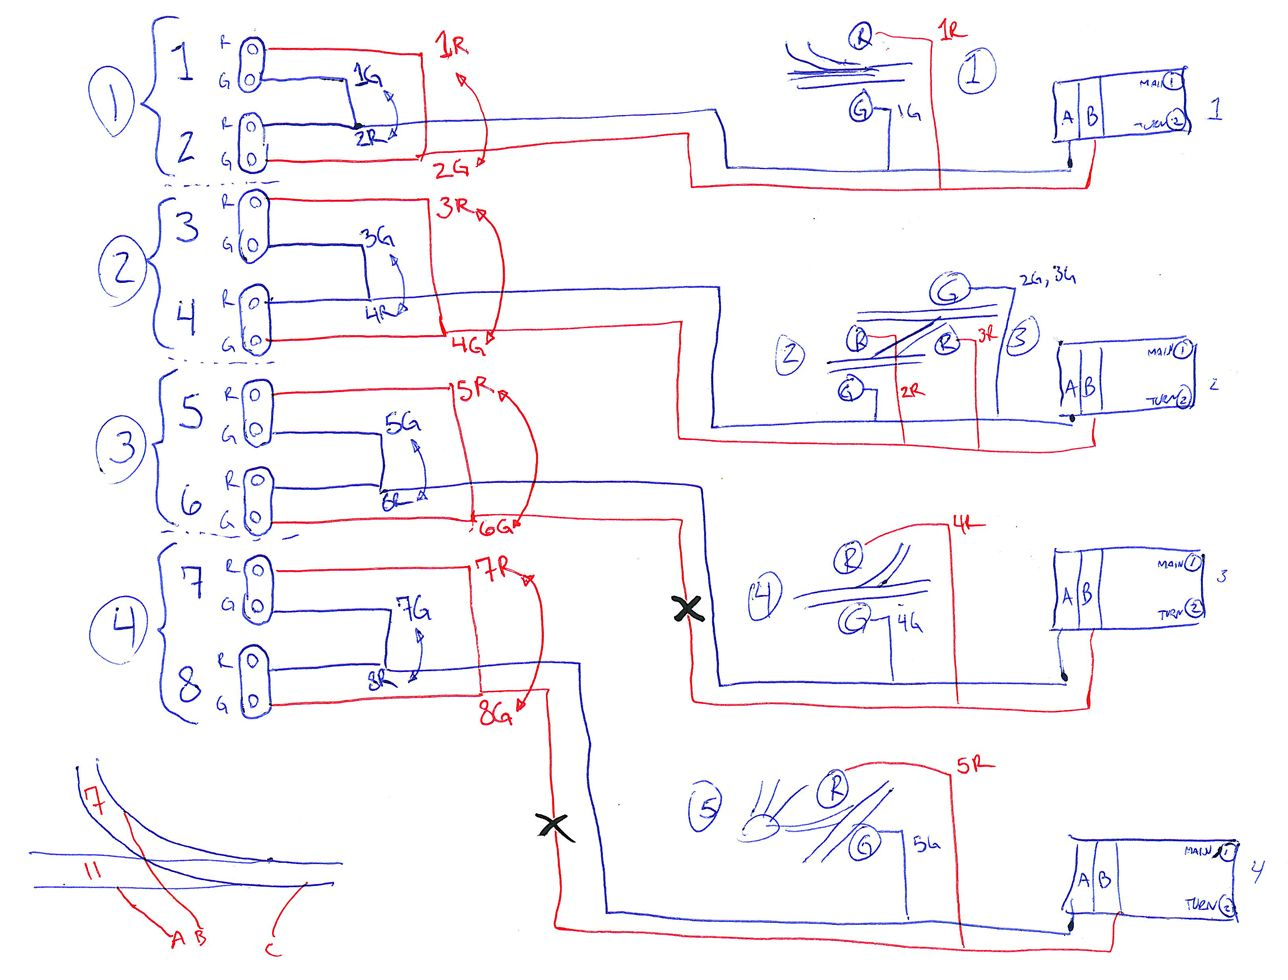 hight resolution of planning sketch depicting wiring for the trackside signals control panel model trains diagram